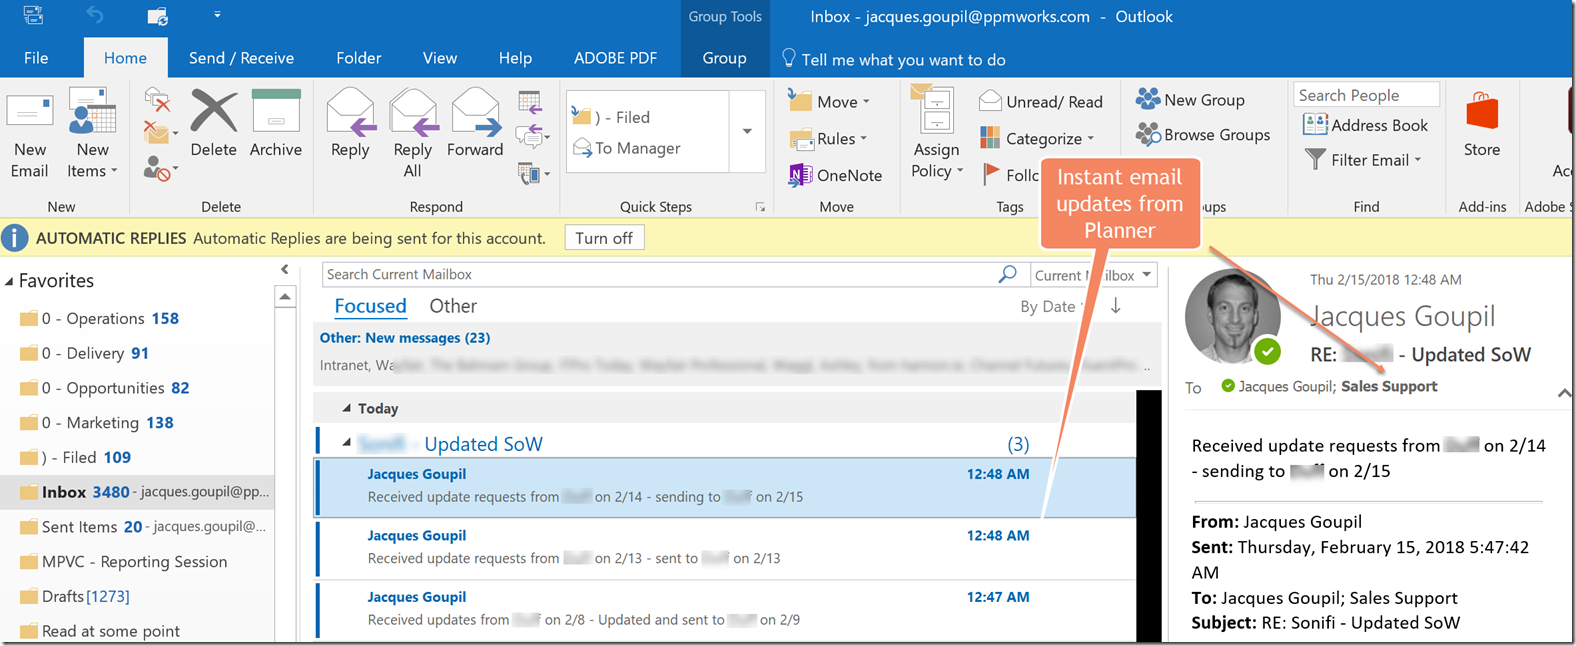 instant email updates from planner